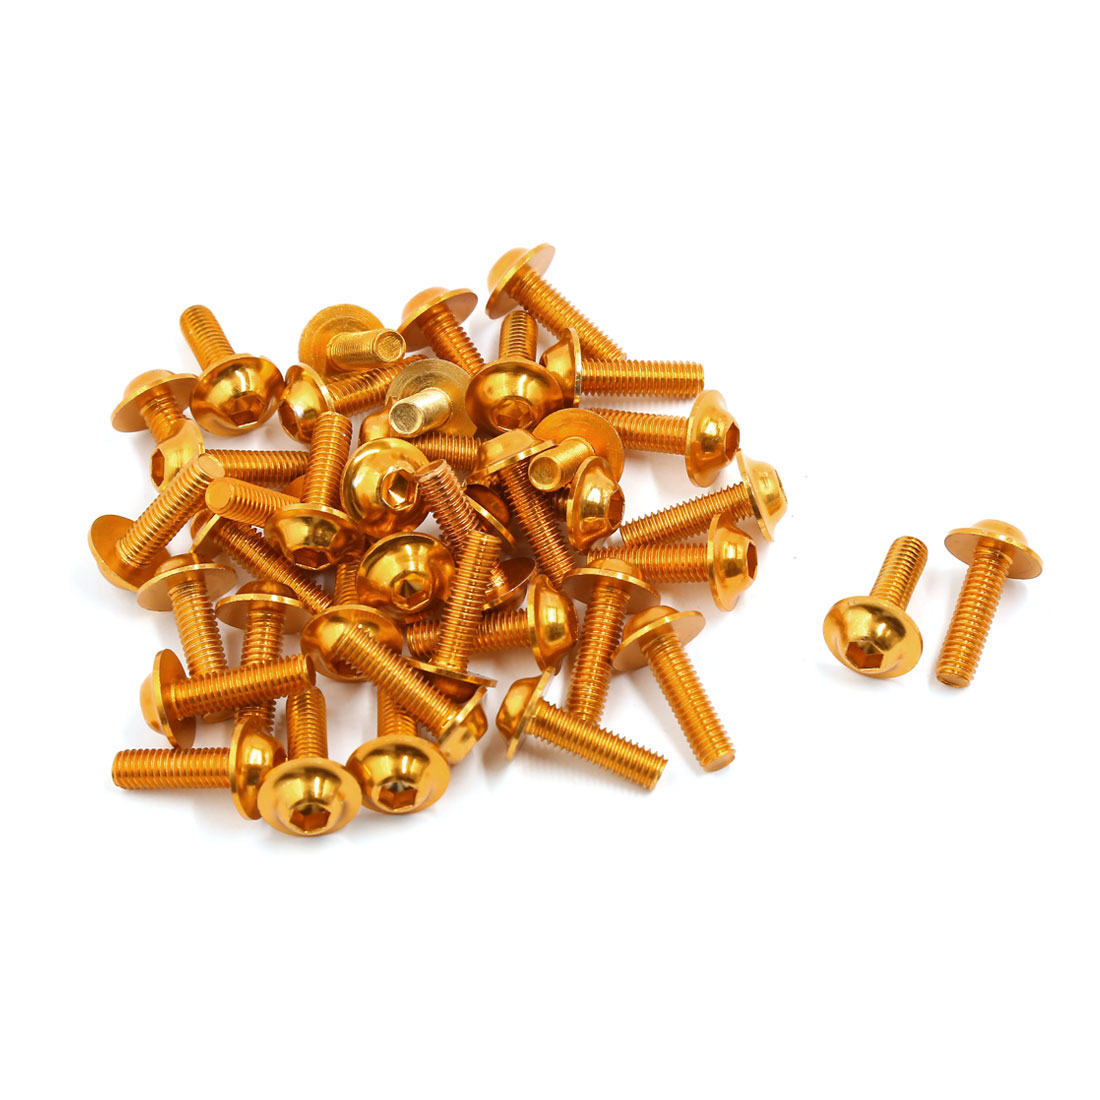 40 Pcs M6 Hexagon Fastener Bolts Screws Gold Tone for Motorcycle Fairing